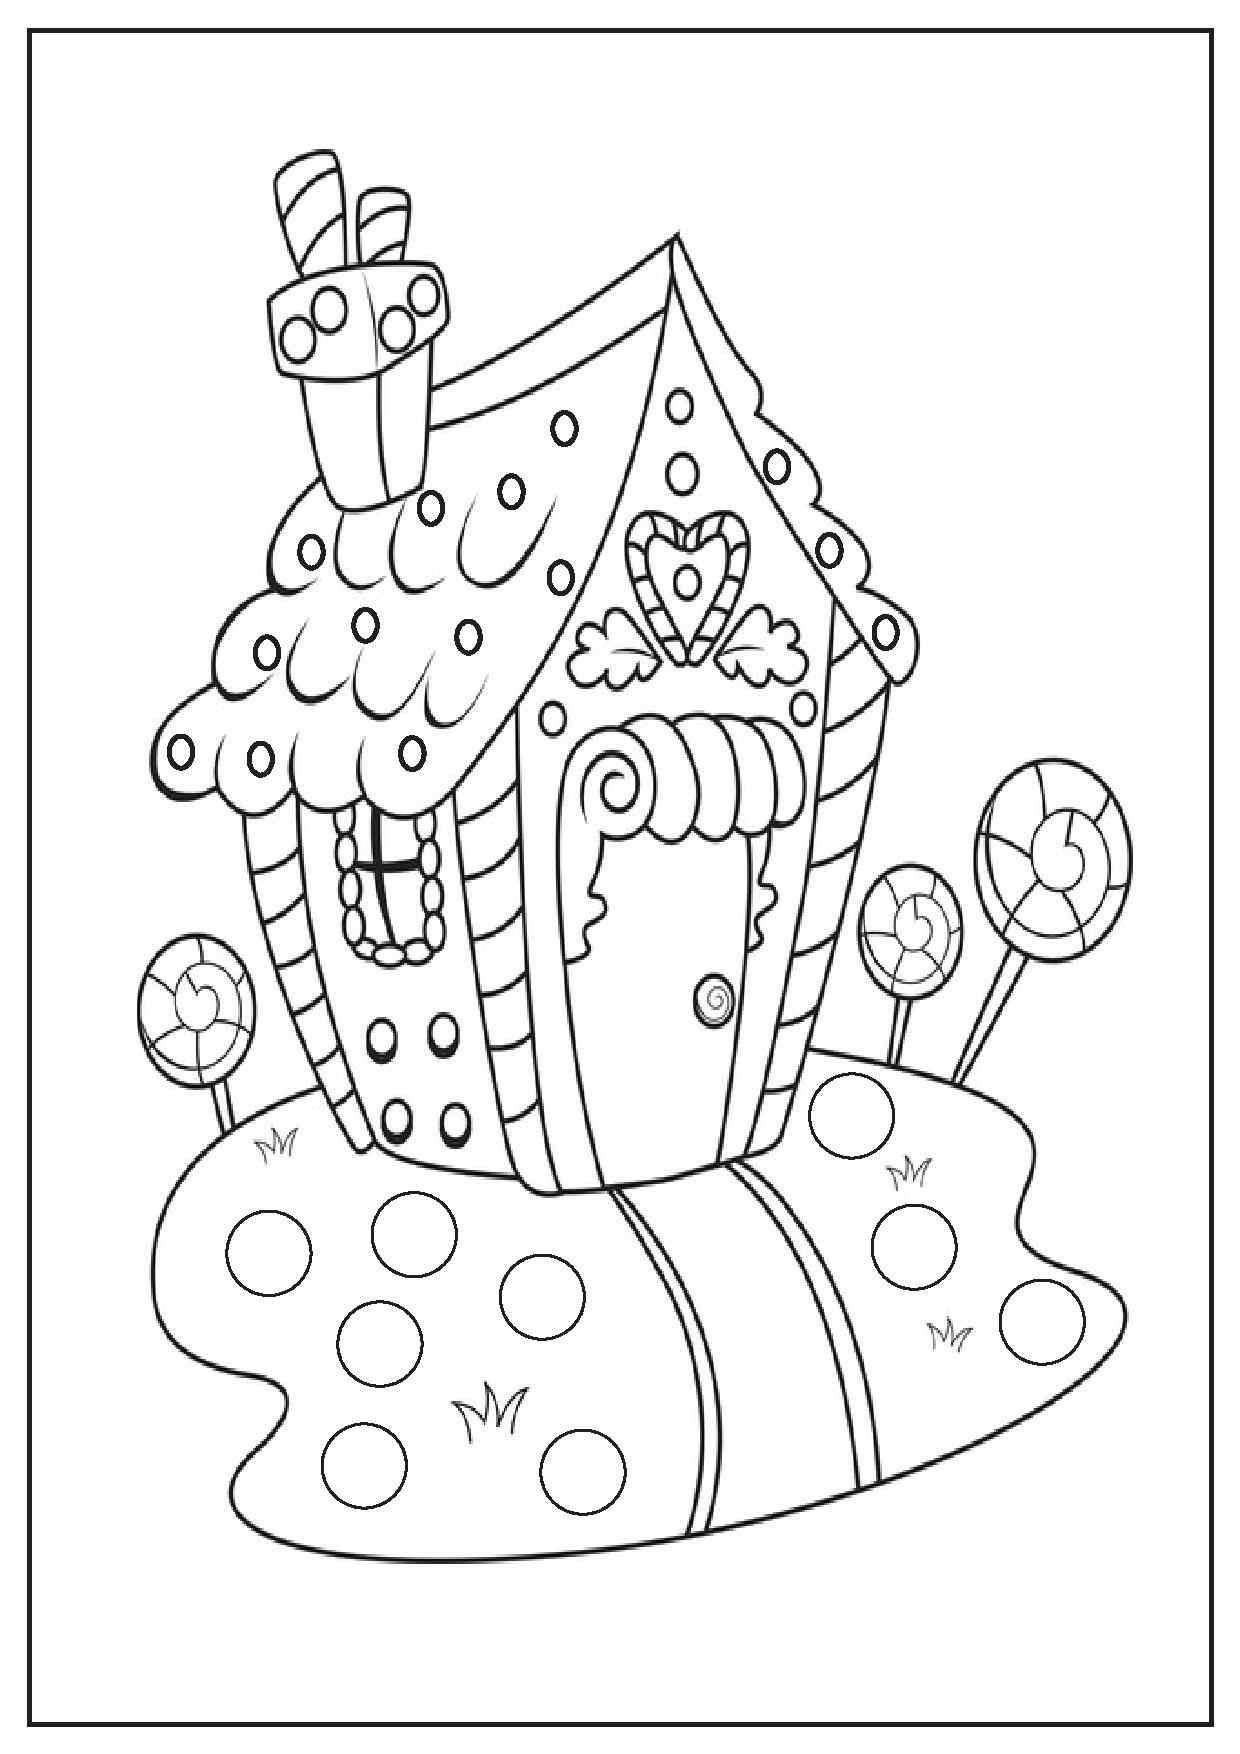 Pinterest christmas adult coloring pages - Free Adult Coloring Pages